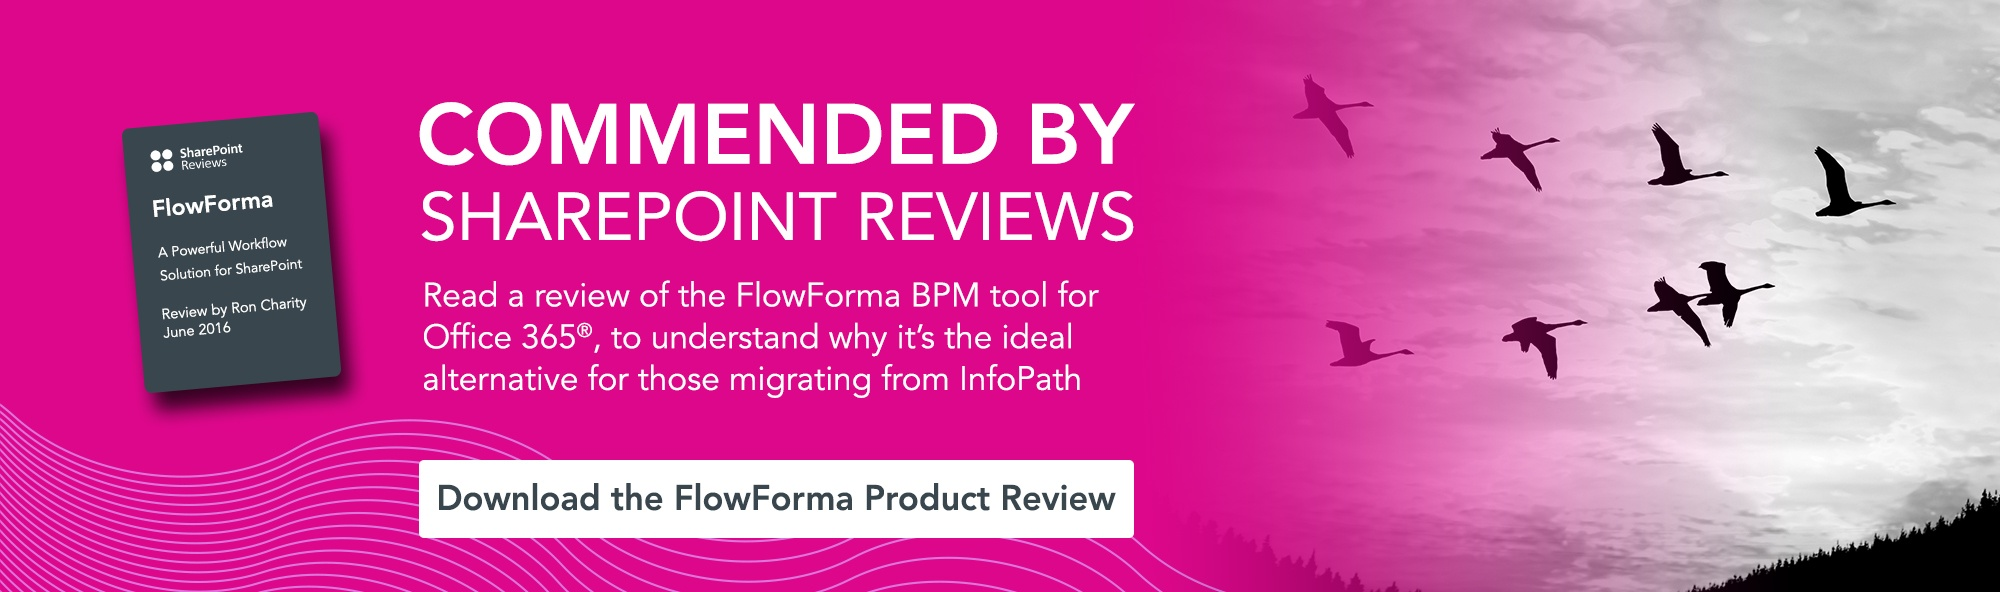 Read a review of FlowForma BPM tool for Office 365 to understand why it's the ideal alternative for those migrating from InfoPath